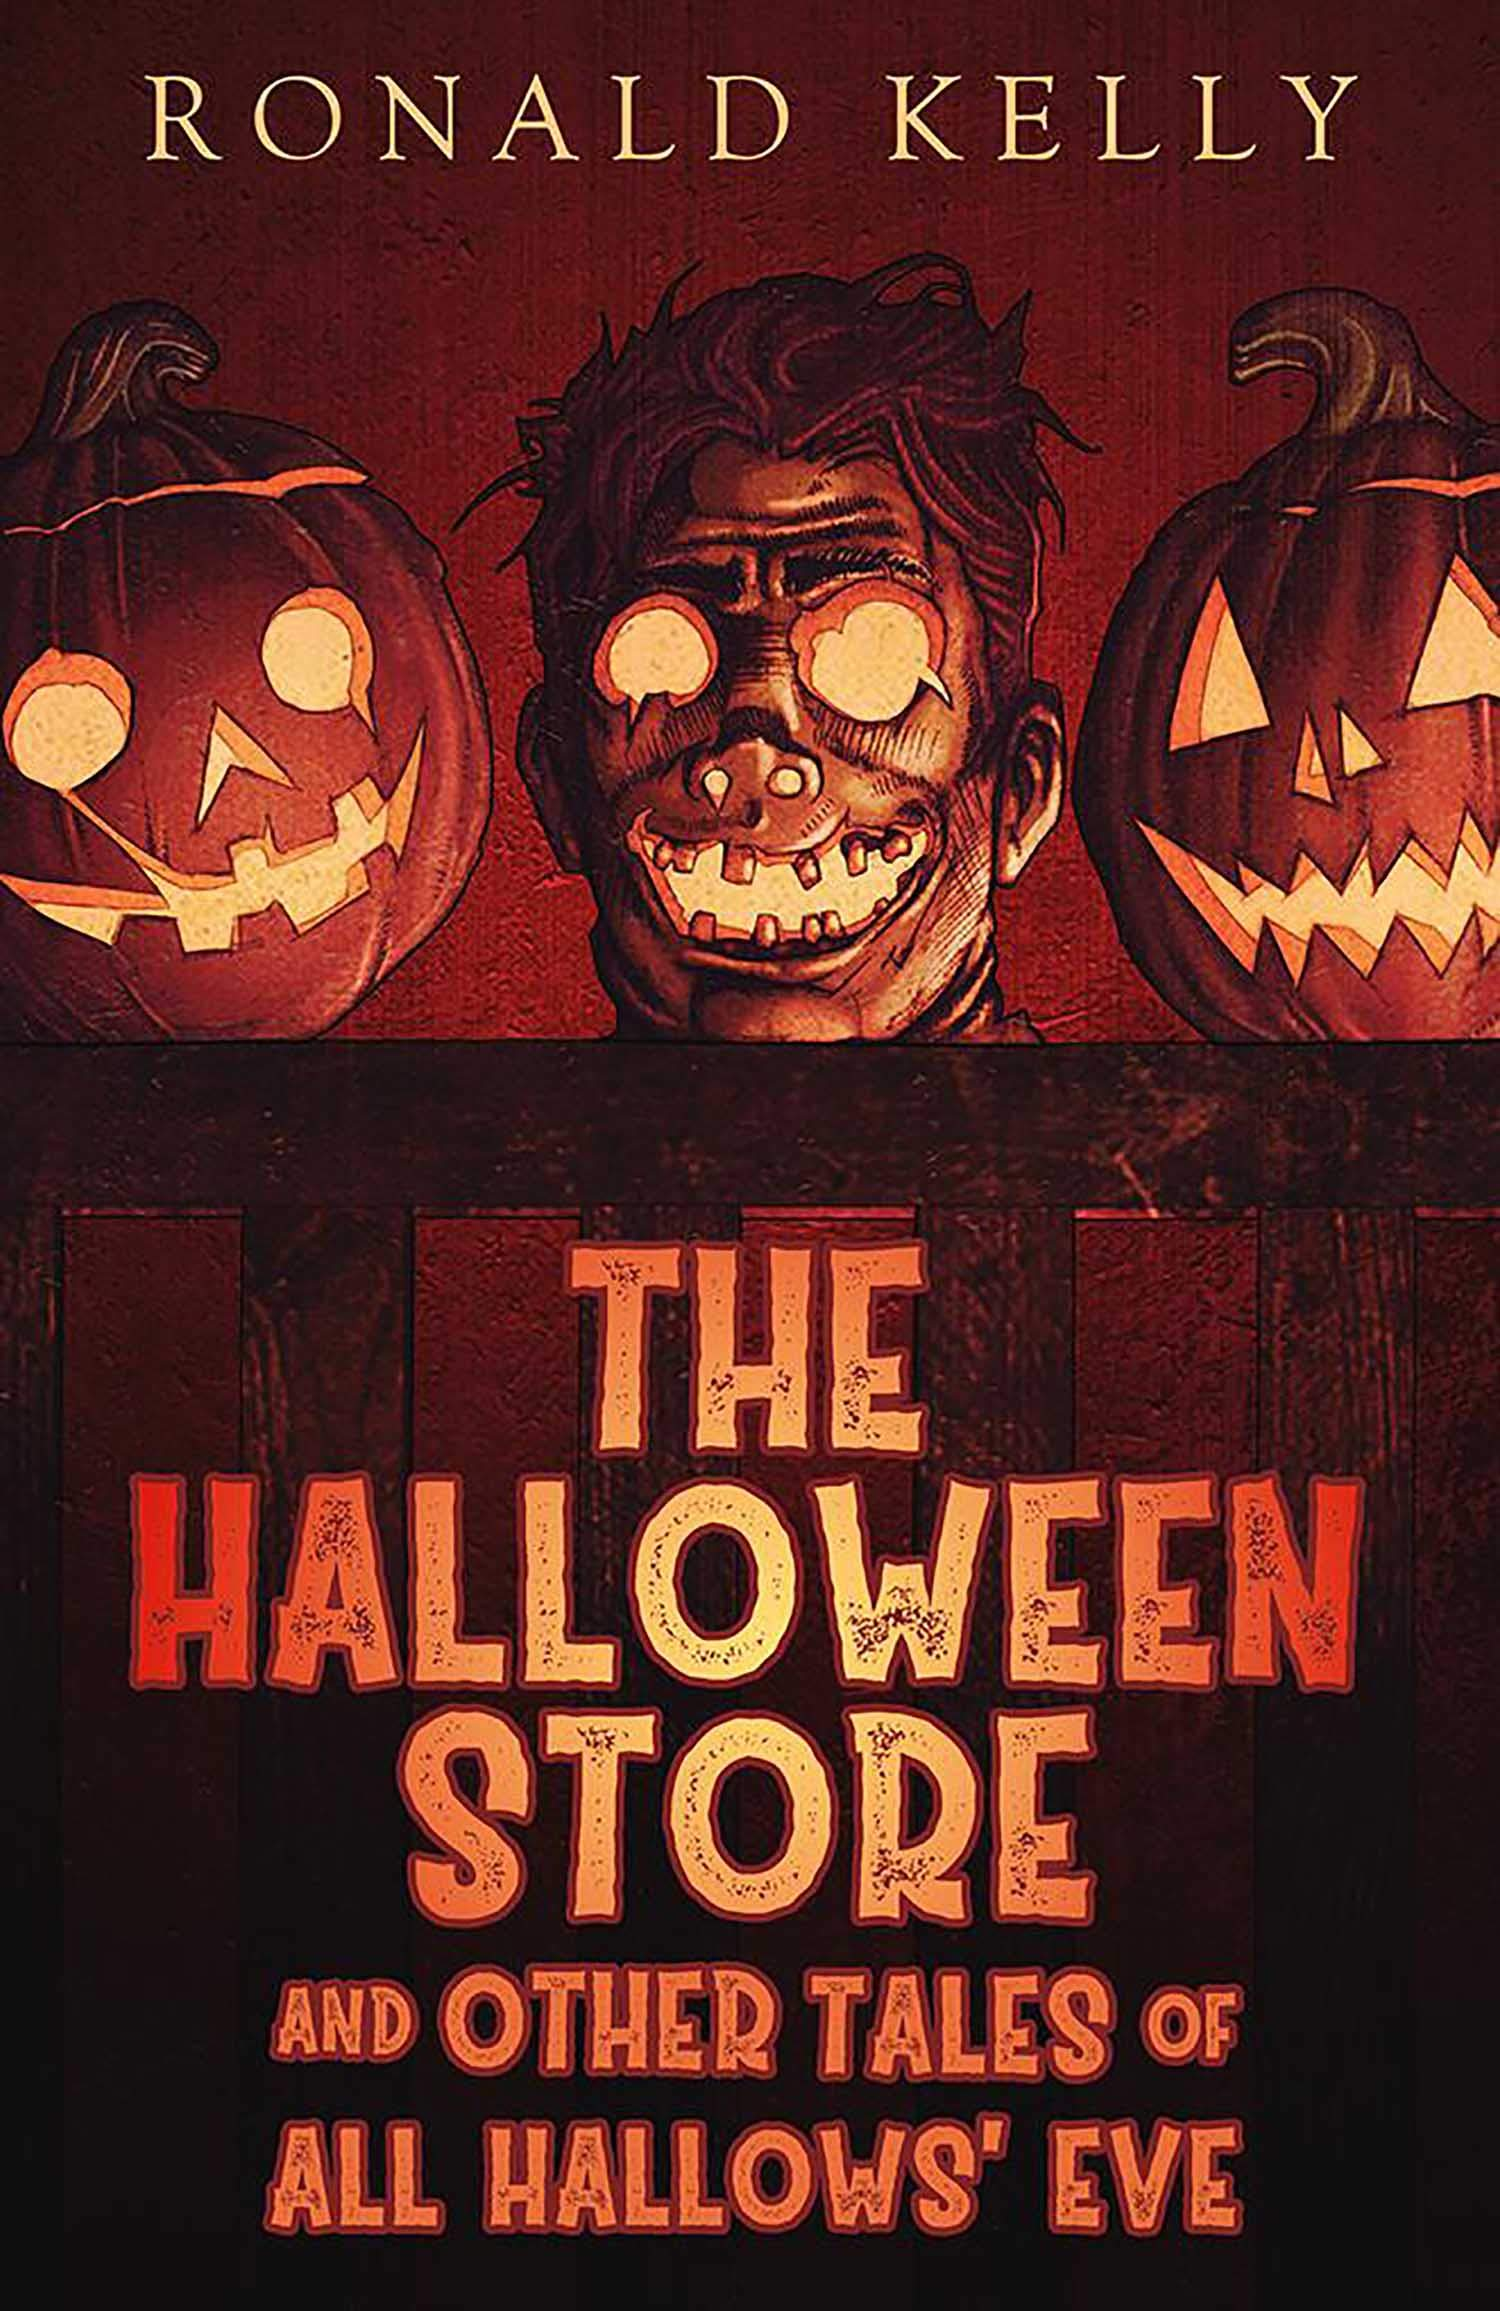 The Halloween Store, and Other Tales of All Hallows' Eve